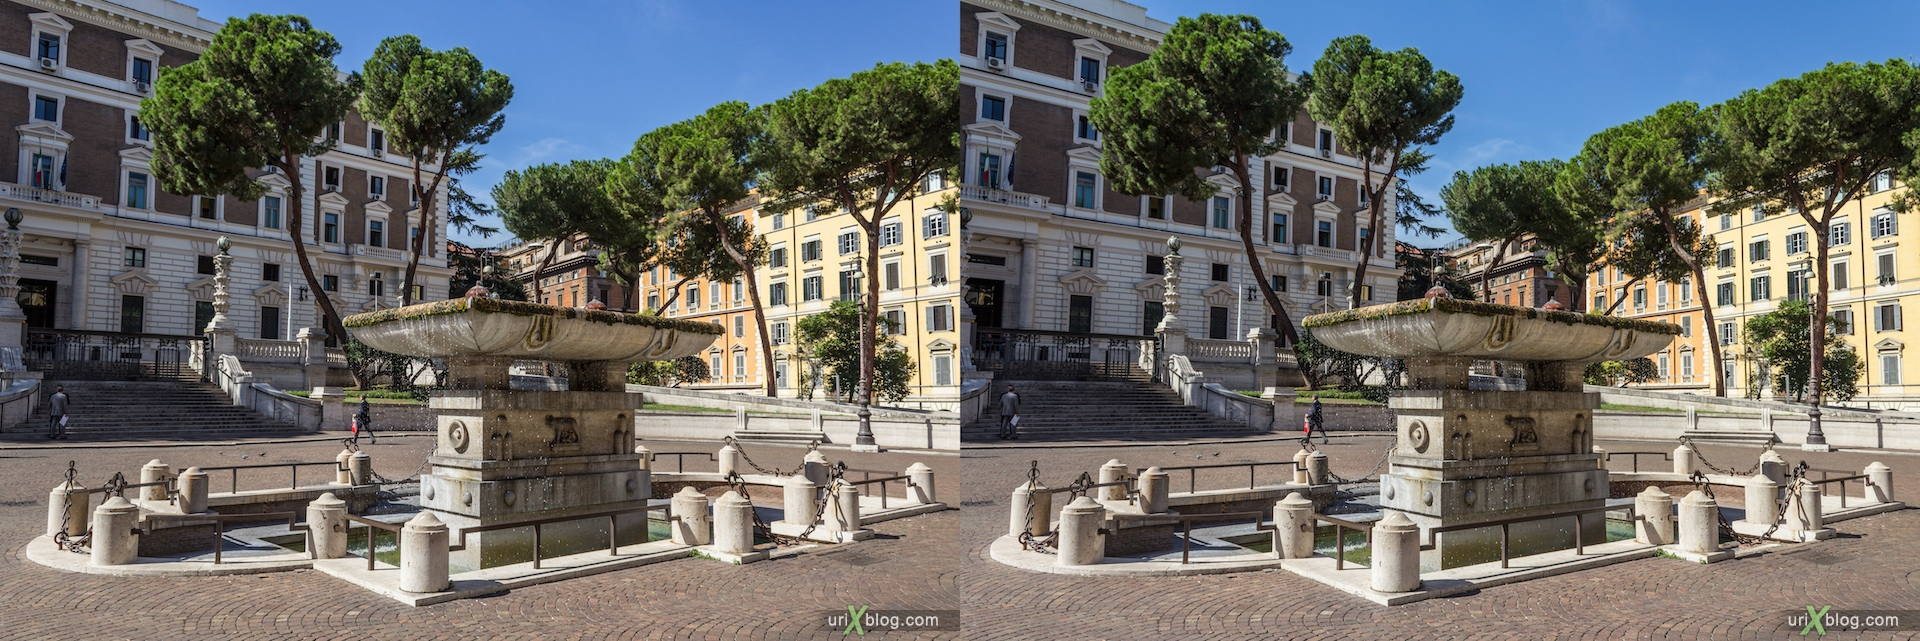 2012, fountain, Piazza del Viminale, Rome, Italy, 3D, stereo pair, cross-eyed, crossview, cross view stereo pair